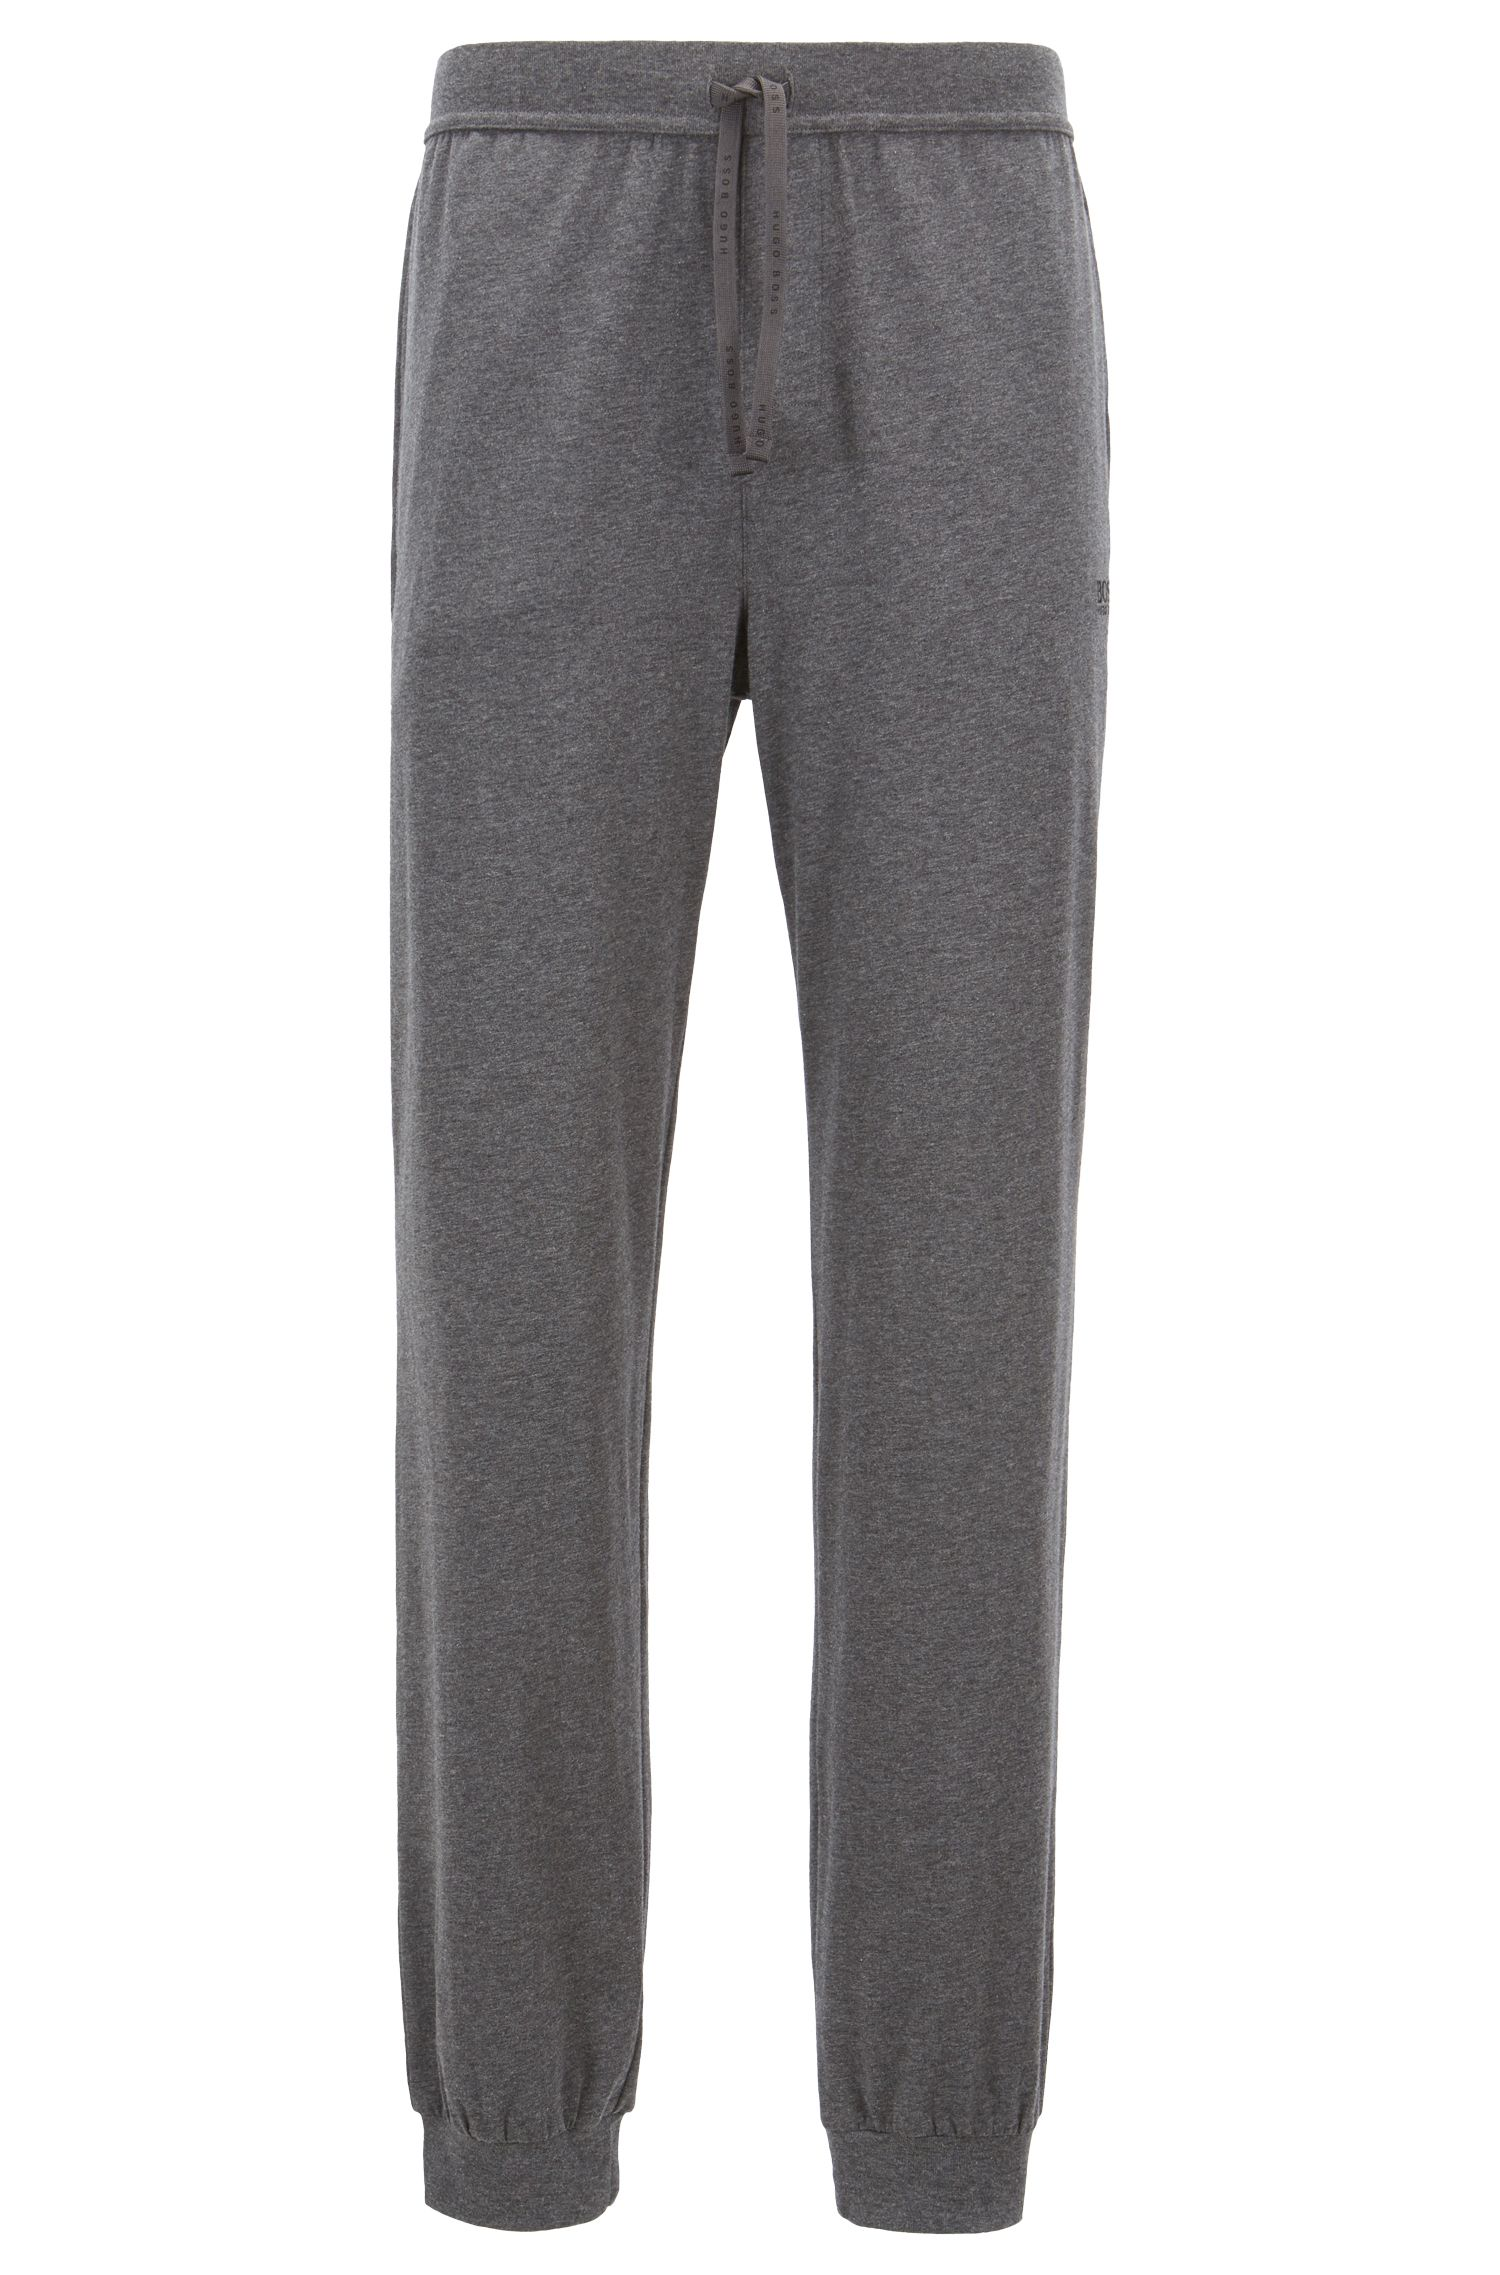 Cuffed loungewear trousers in stretch cotton